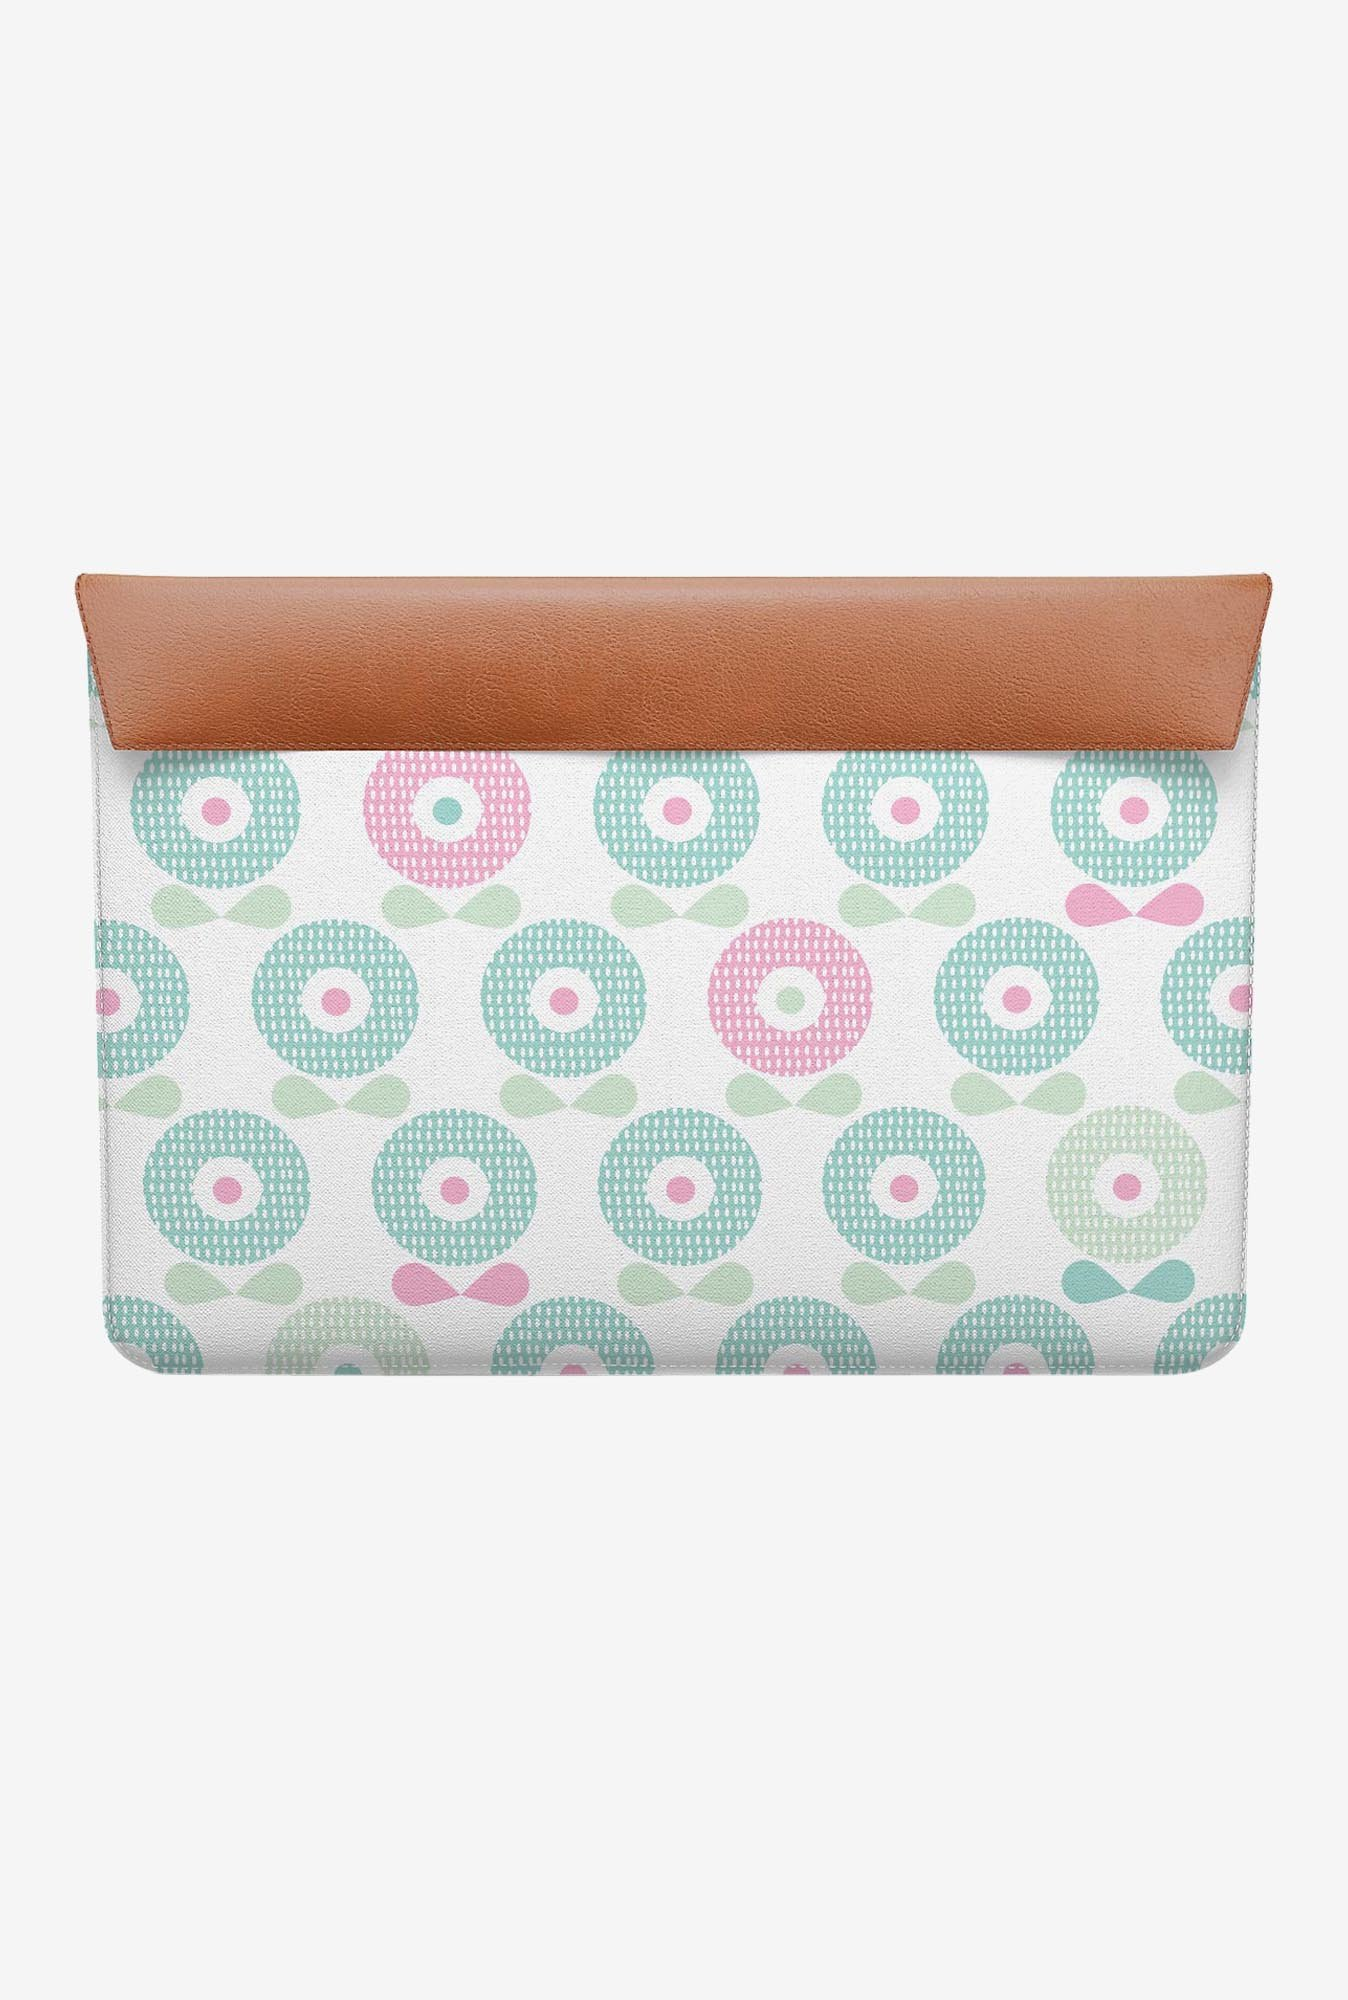 "DailyObjects Poppy Flowers MacBook Pro 13"" Envelope Sleeve"